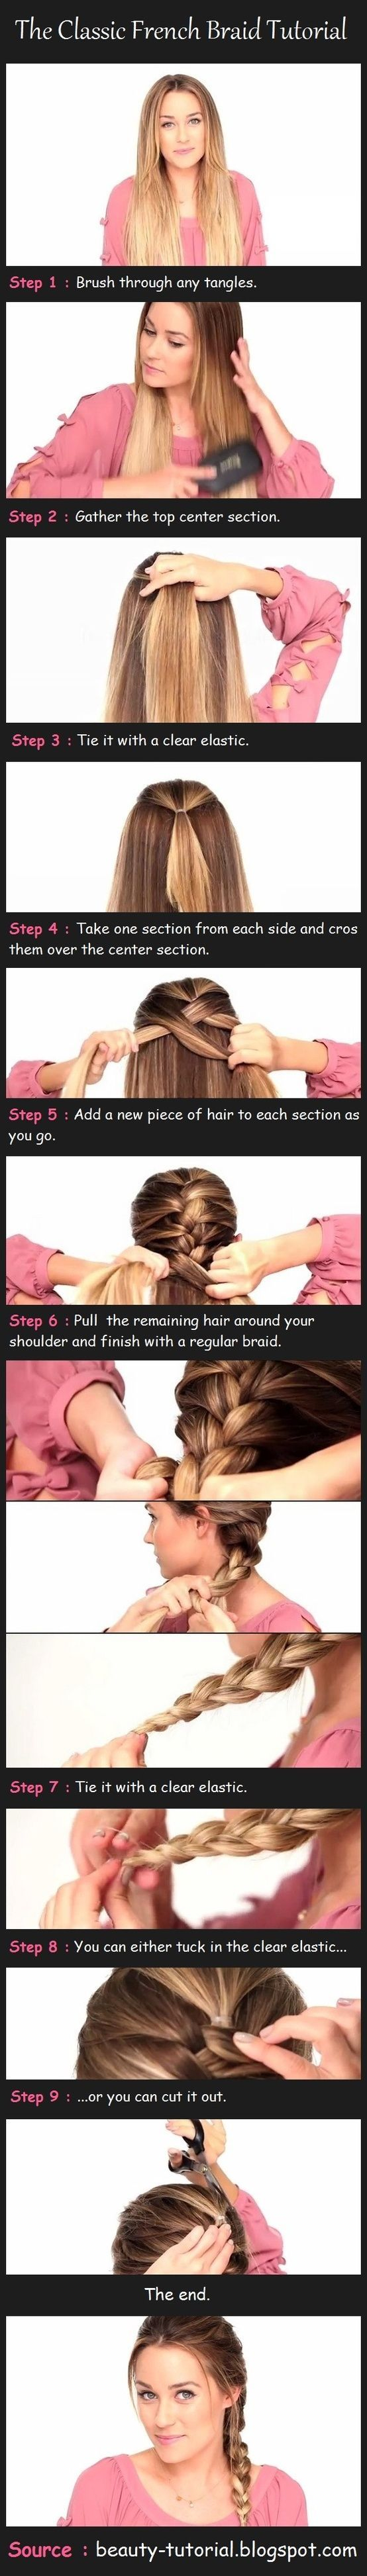 french braid. Always wanted to know how.